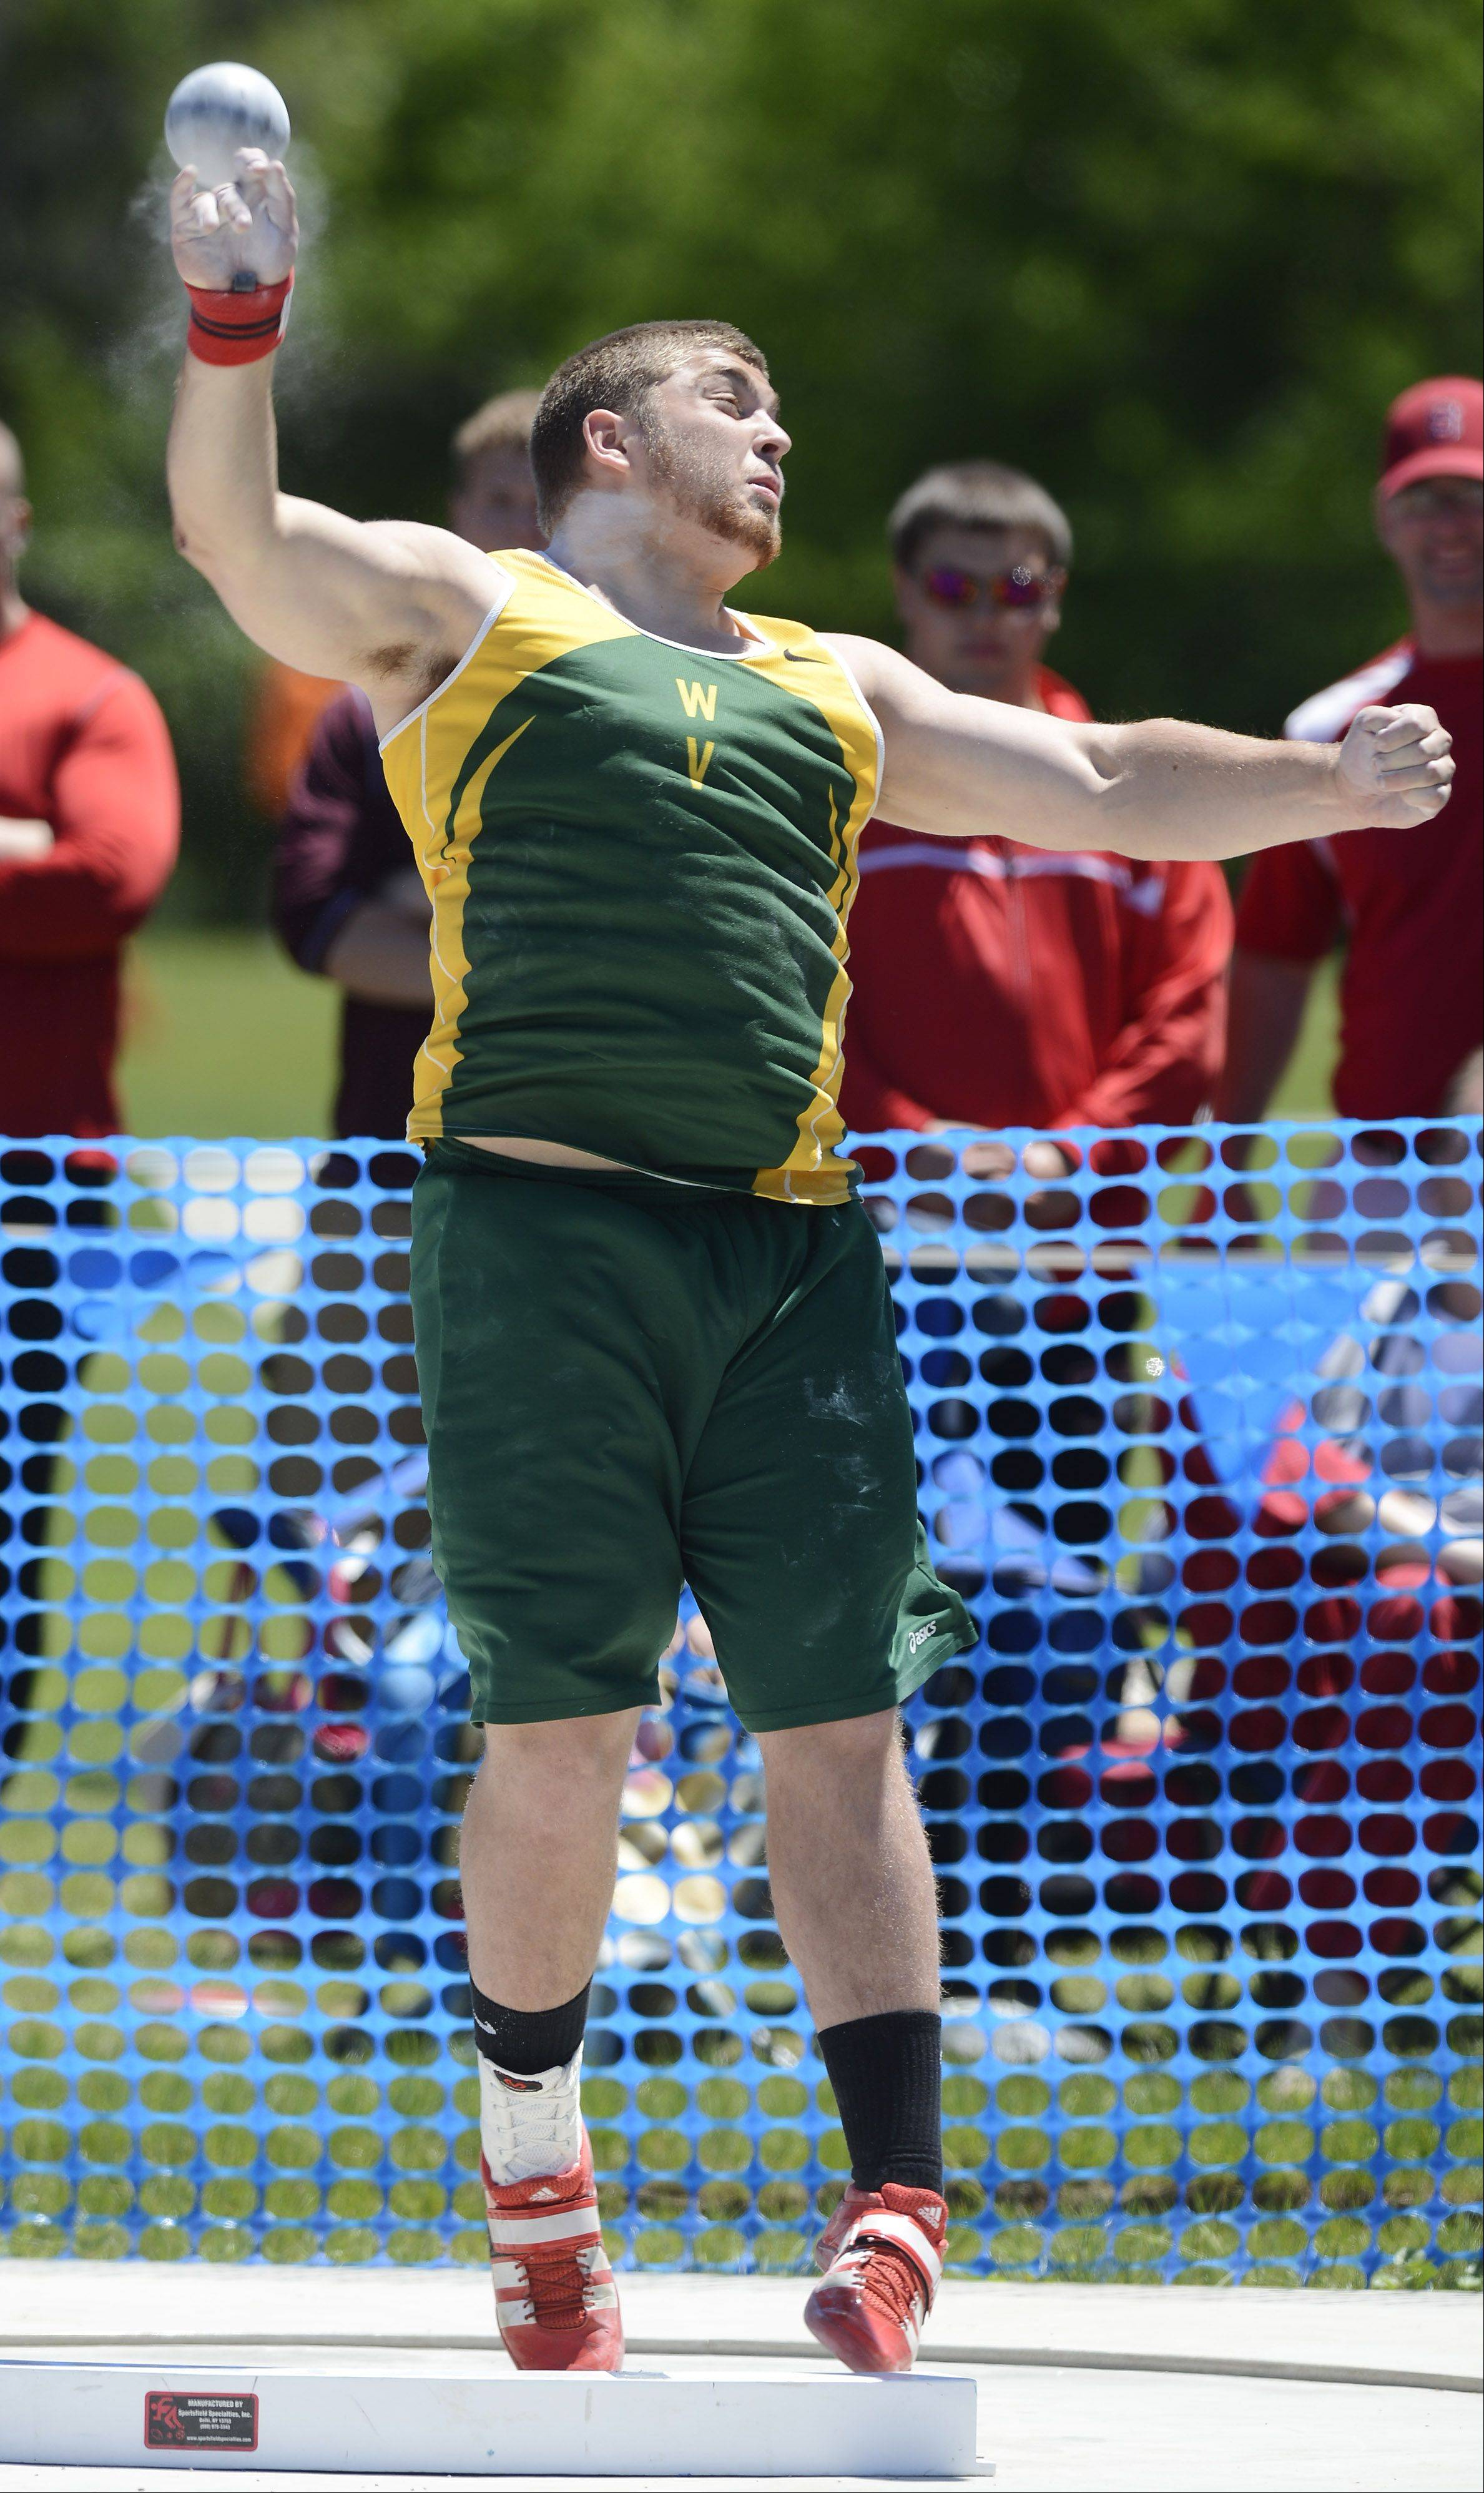 Riley Kittridge of Waubonsie Valley throws in the Class 3A shot put during the boys state track preliminaries in Charleston Friday.